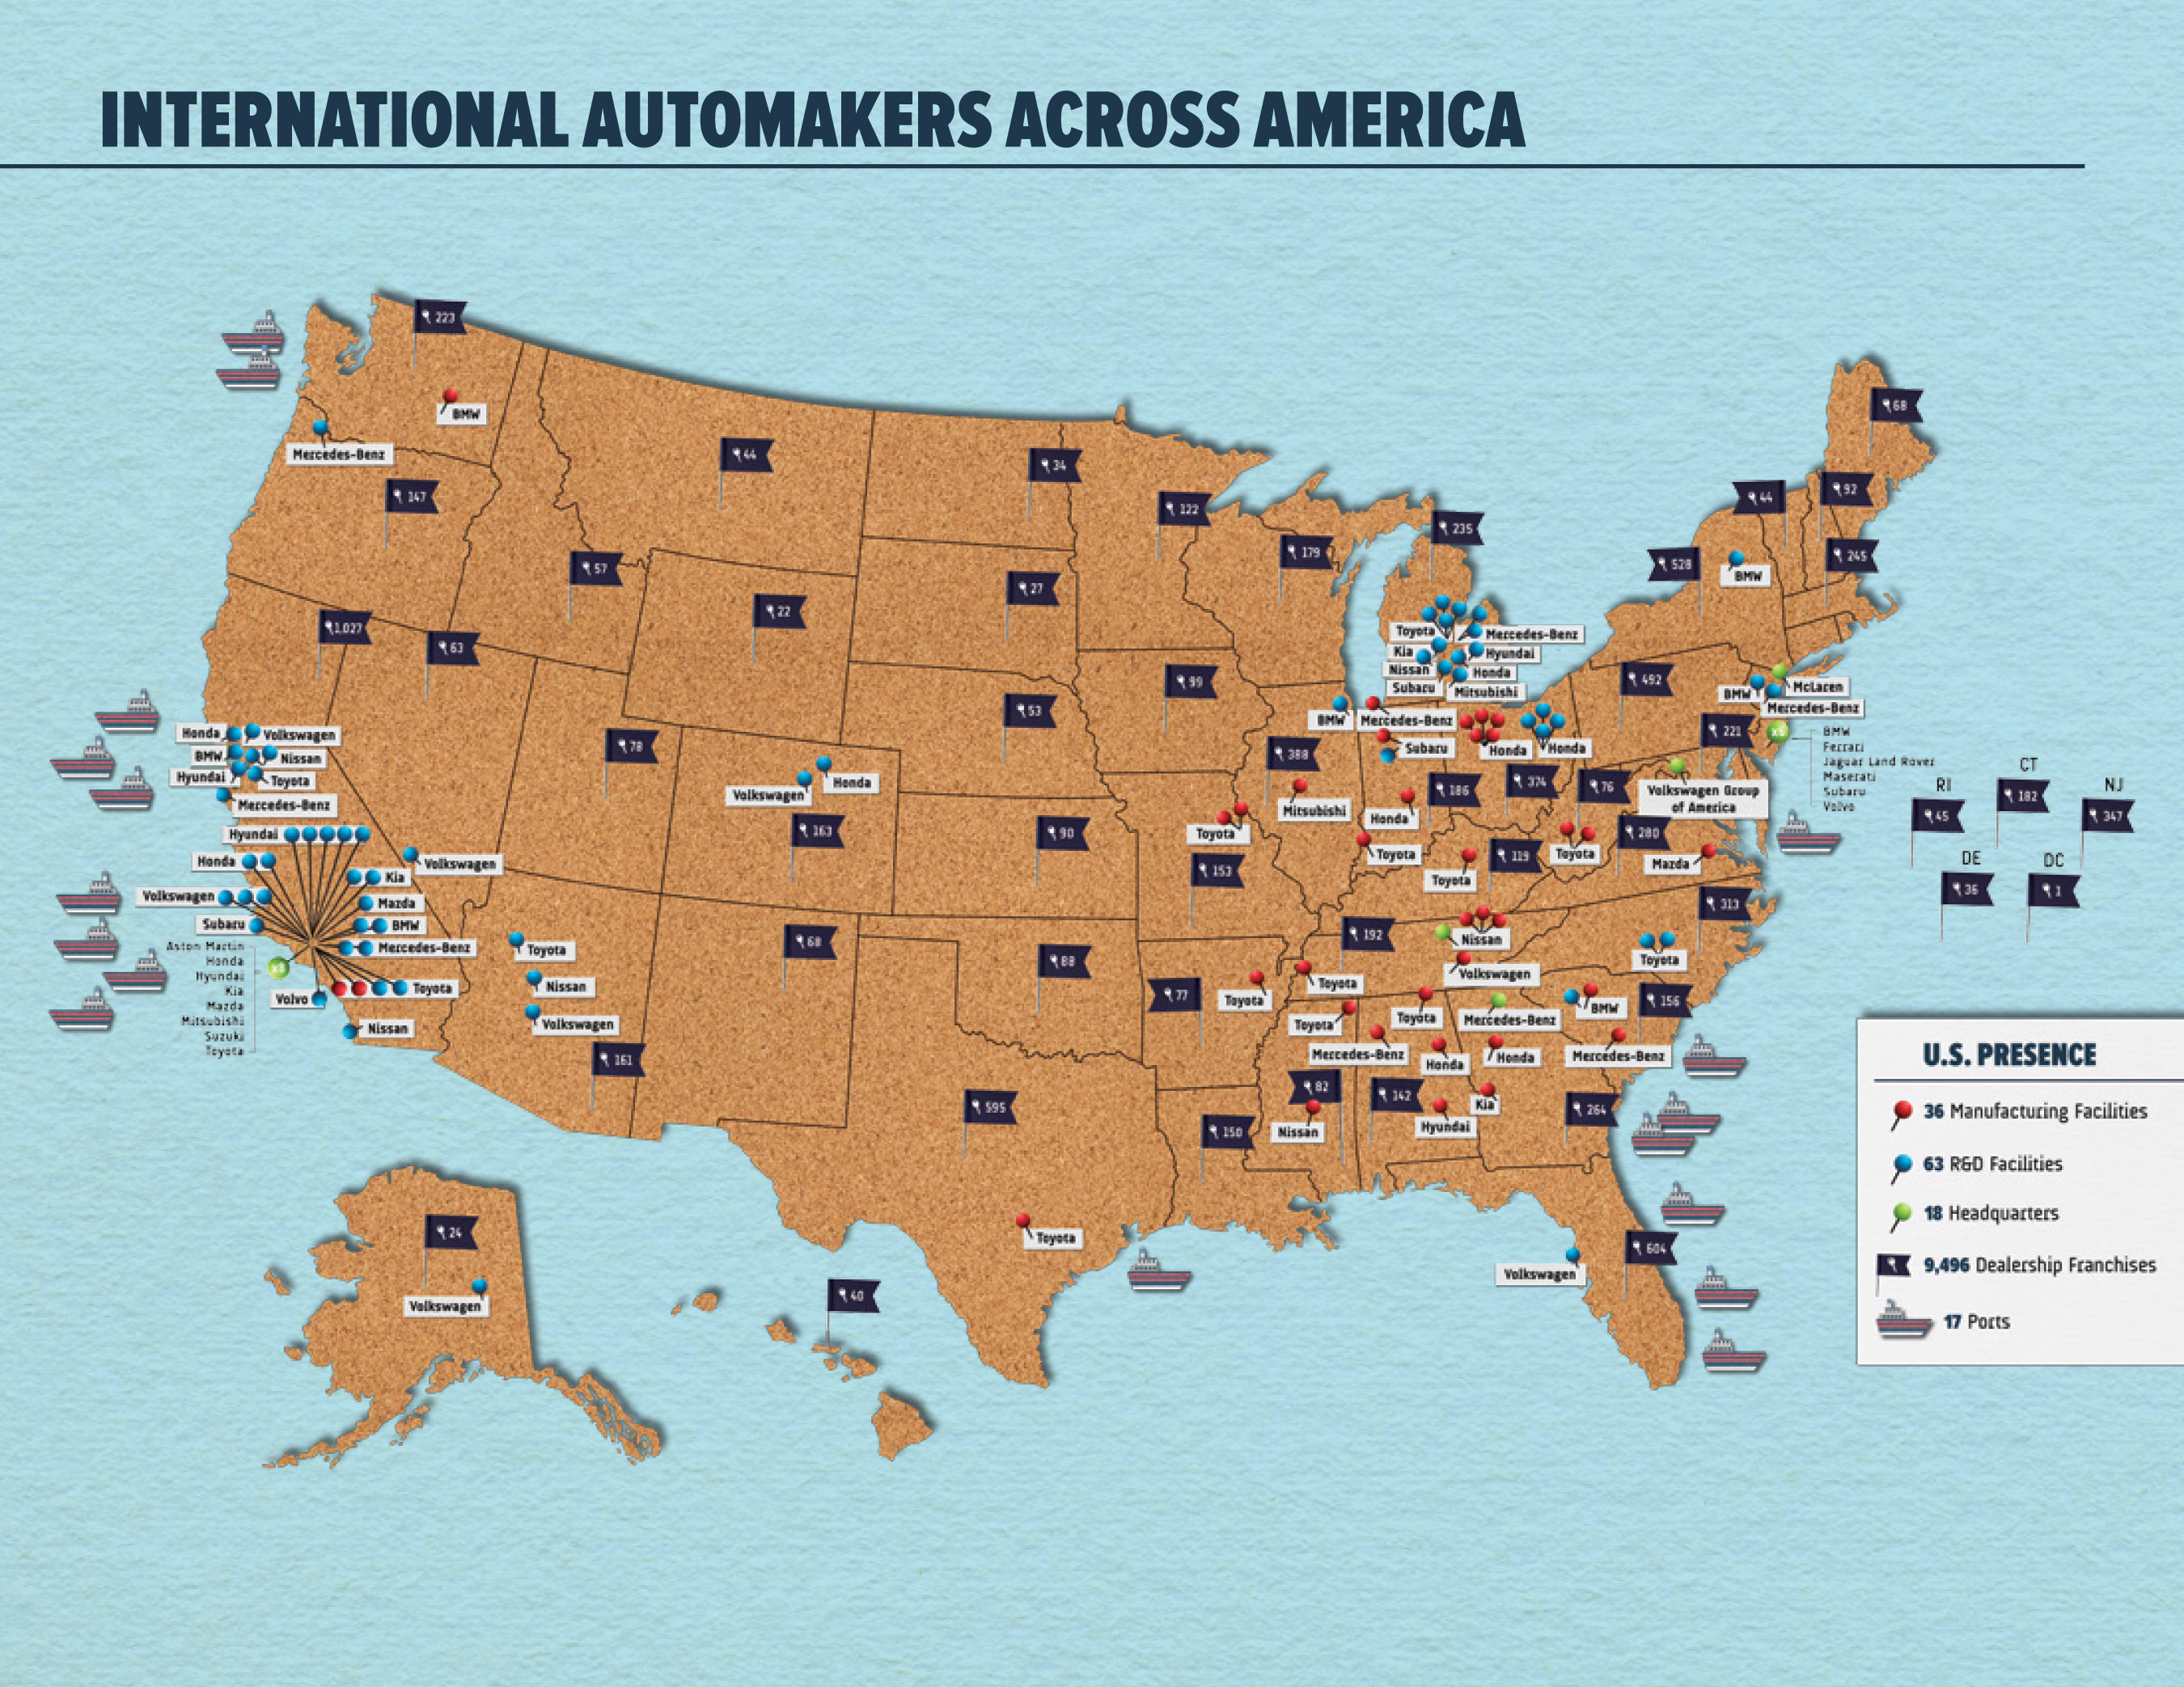 The U.S. operations of international automakers consist of 34 facilities, 62 R&D facilities, 18 headquarters, and 9, 251 dealer franchises across the country.